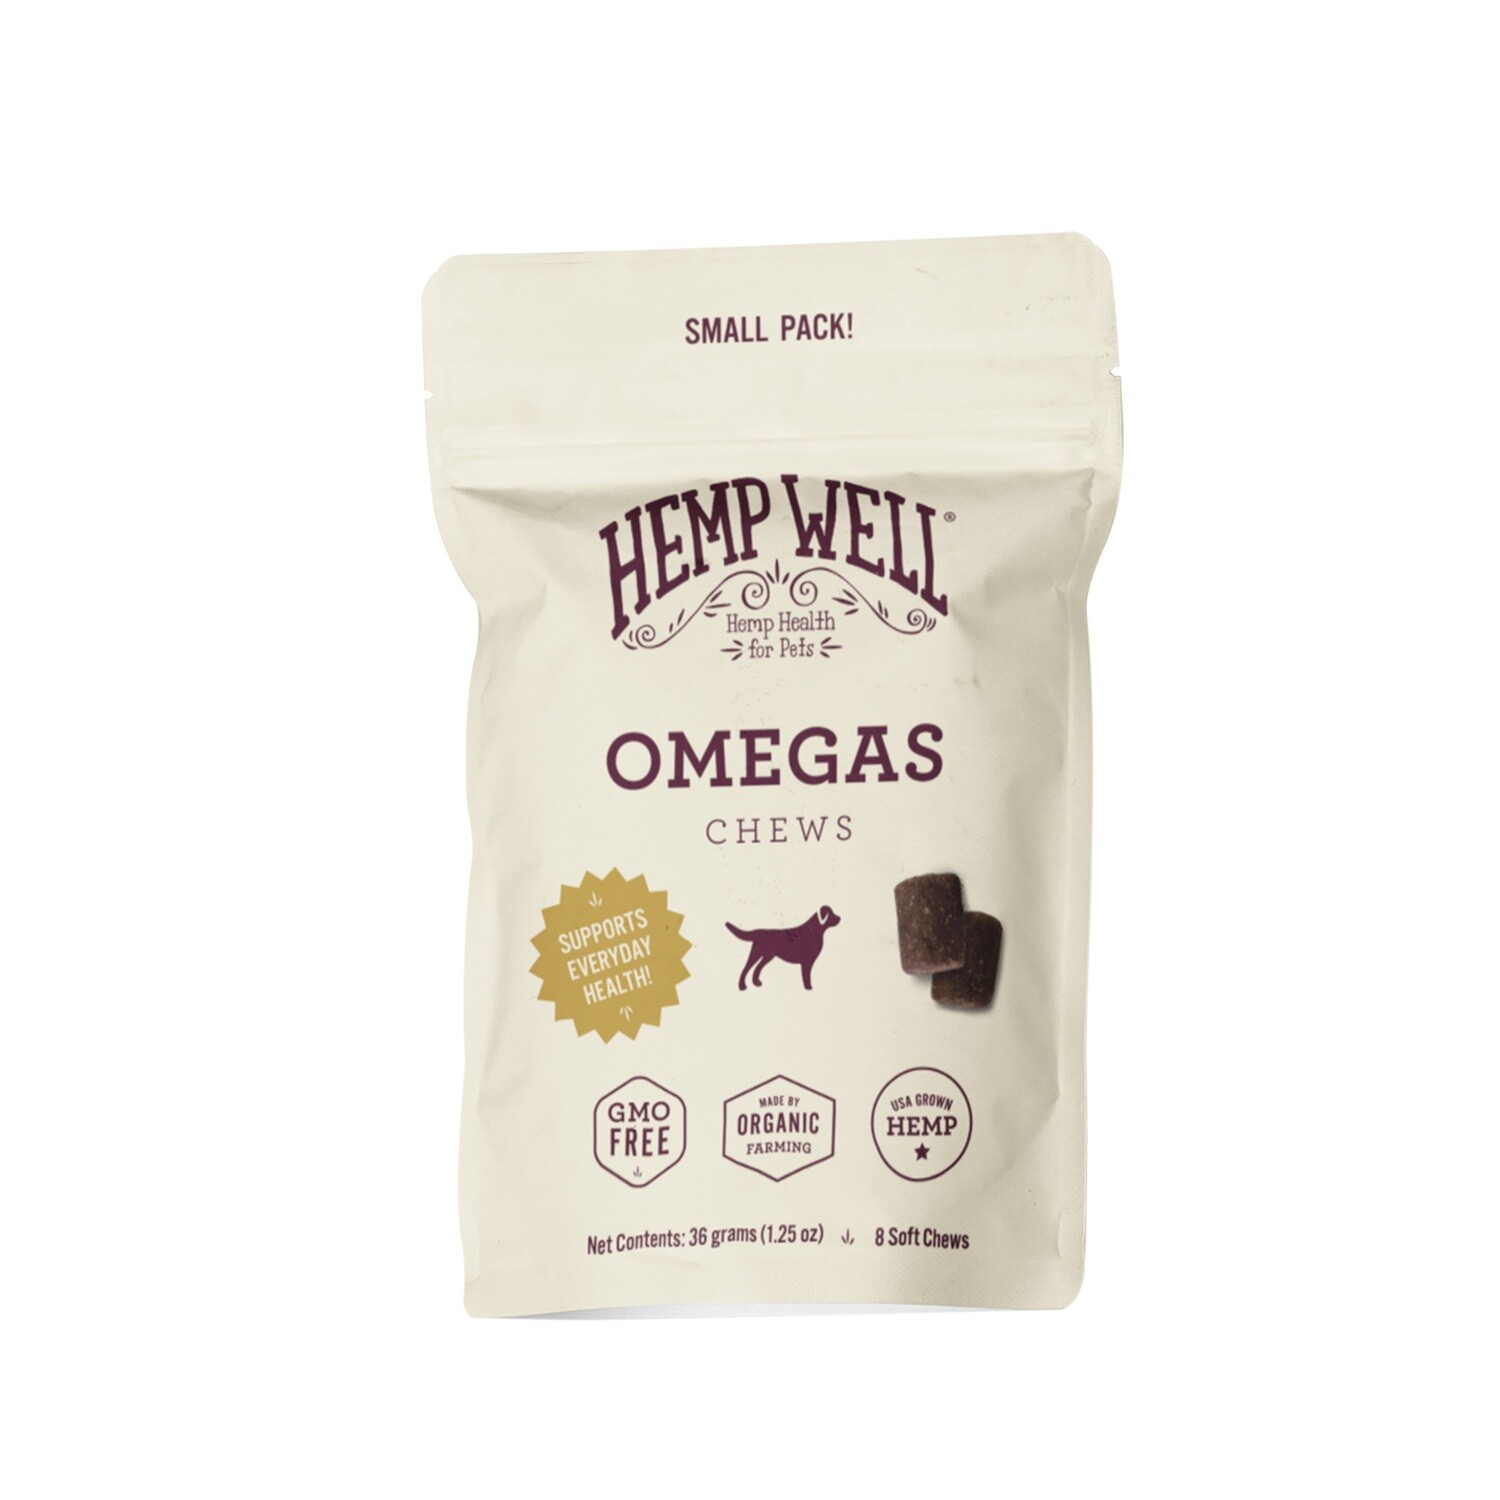 Omegas Soft Chews Small Pack